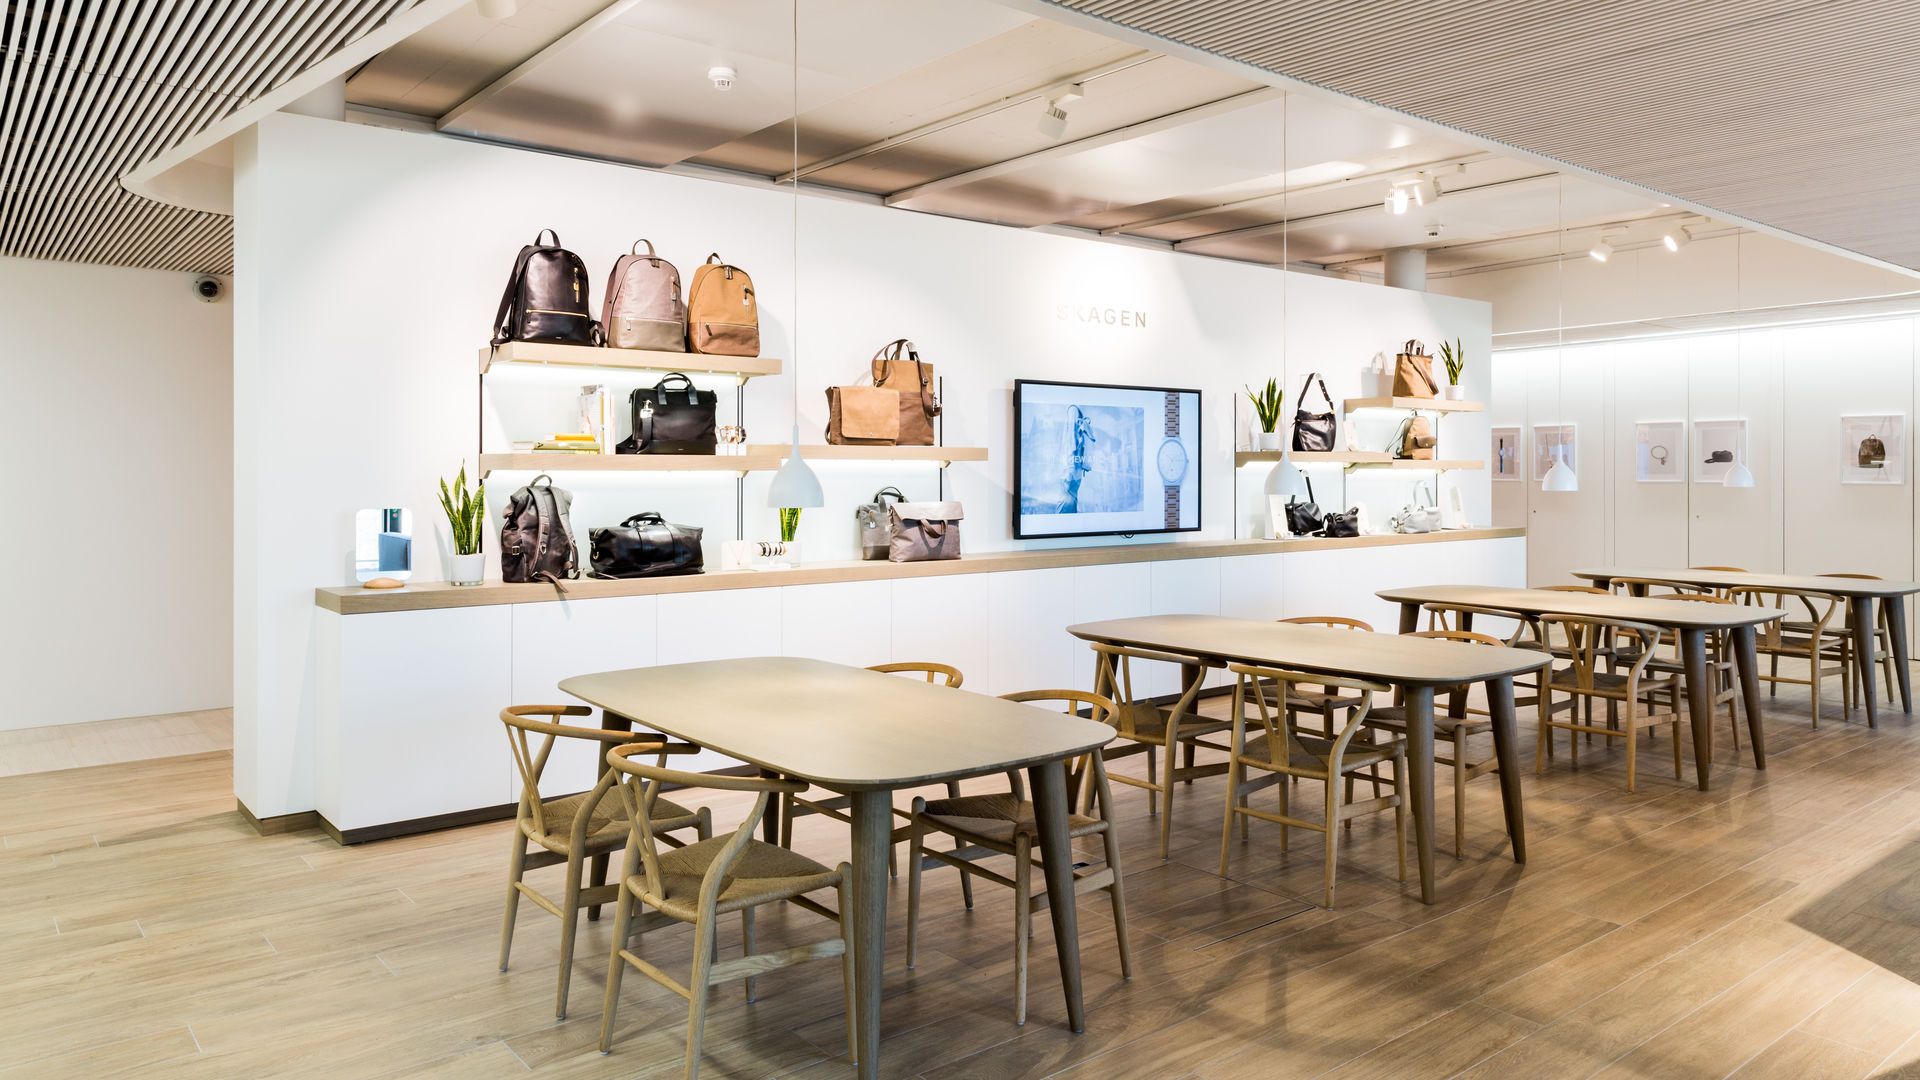 Skagen Showroom, Basel (Switzerland) (2)_web_reference